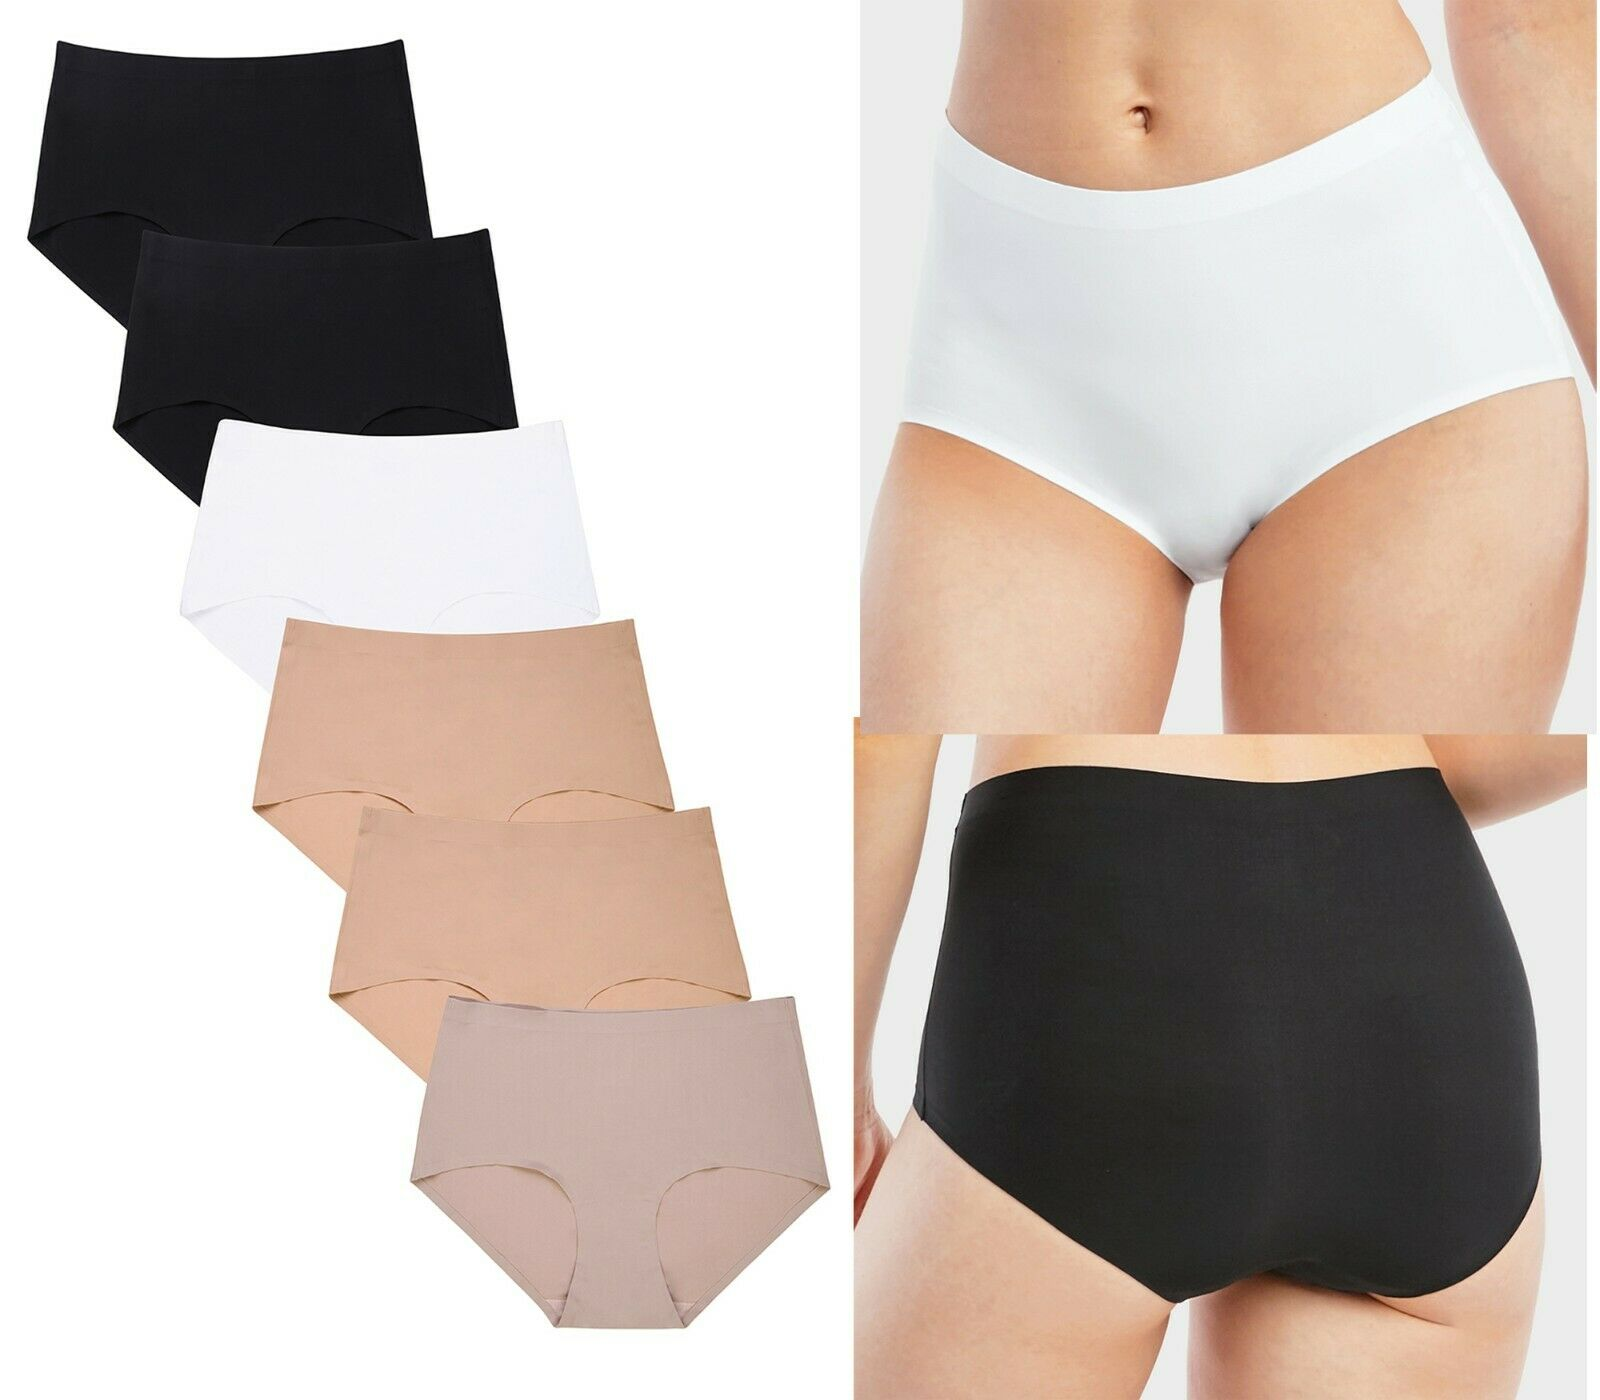 6 Women 2X 3X Plus Size High Waist Tummy Slim Control Underwear Brief Panty Clothing, Shoes & Accessories